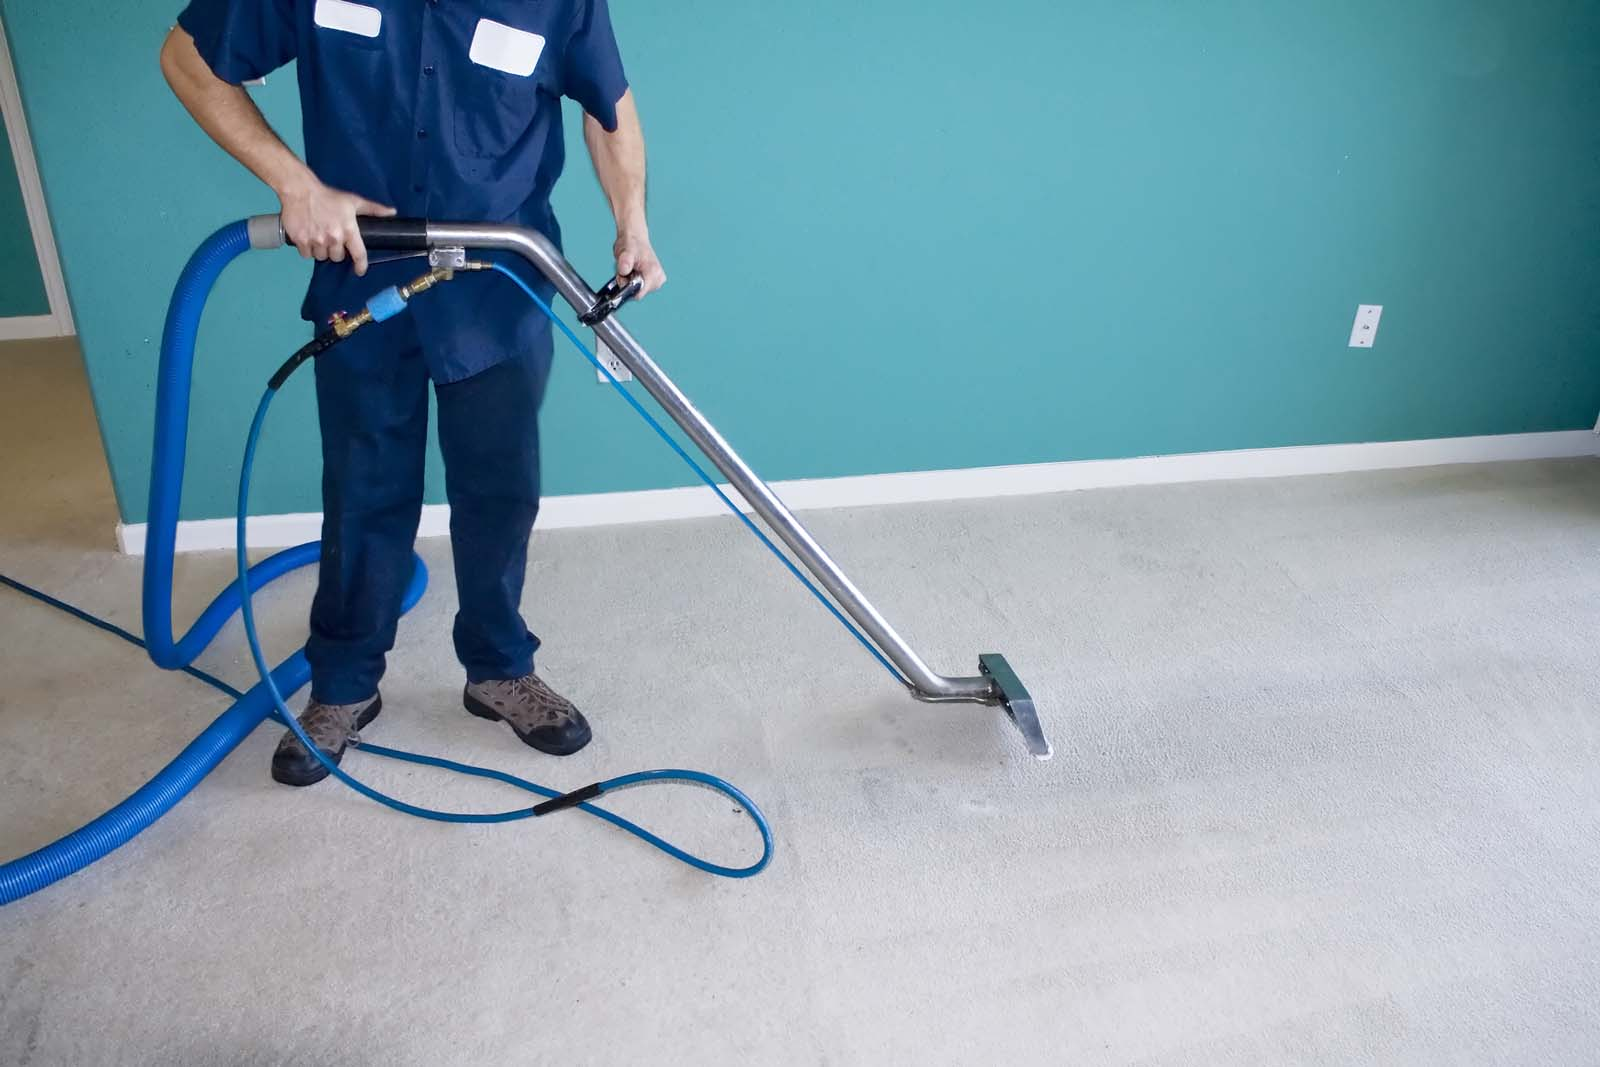 taskforce Man cleaning carpet